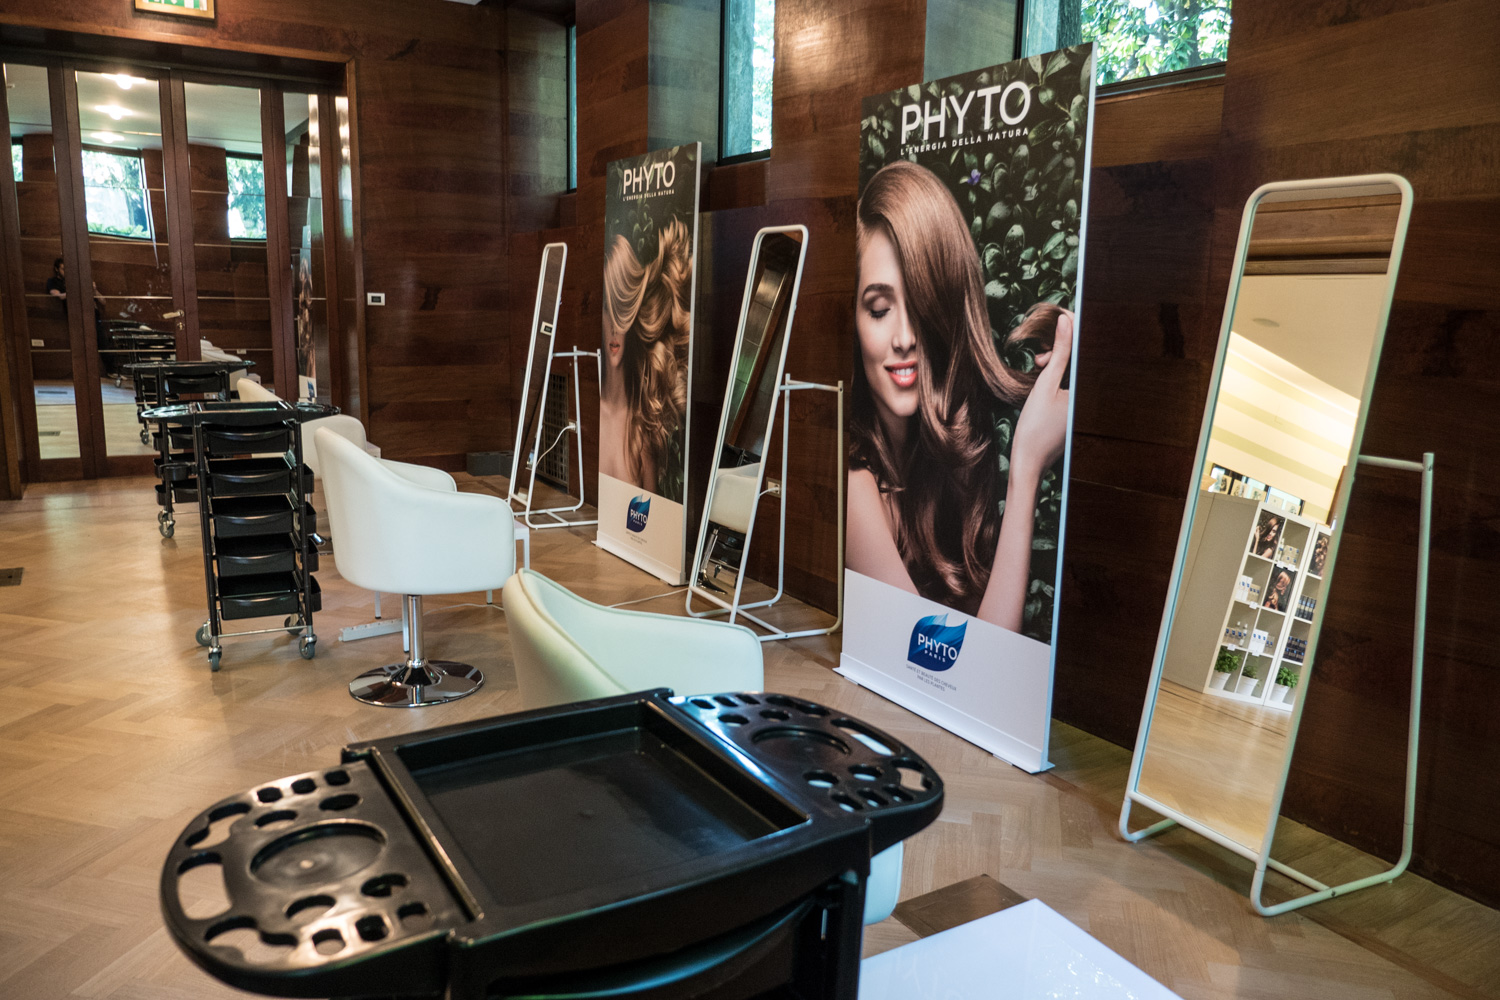 Phyto & IoDonna / hairstyle area